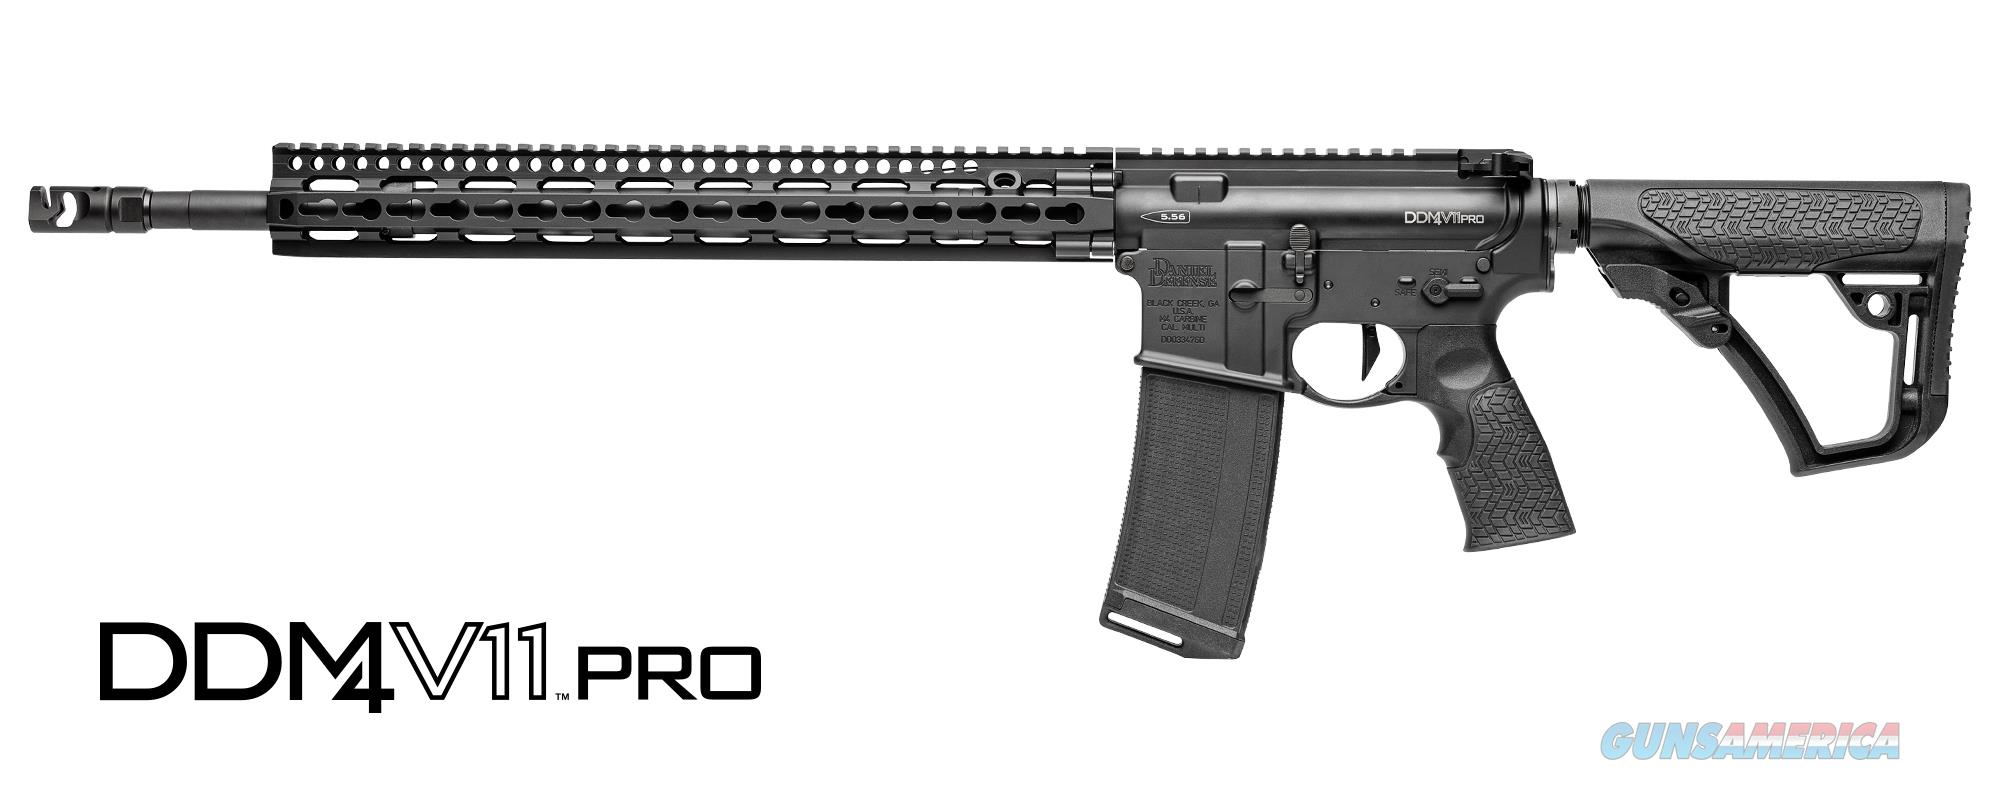 Daniel Defense DDM4V11 PRO  Guns > Rifles > Daniel Defense > Complete Rifles